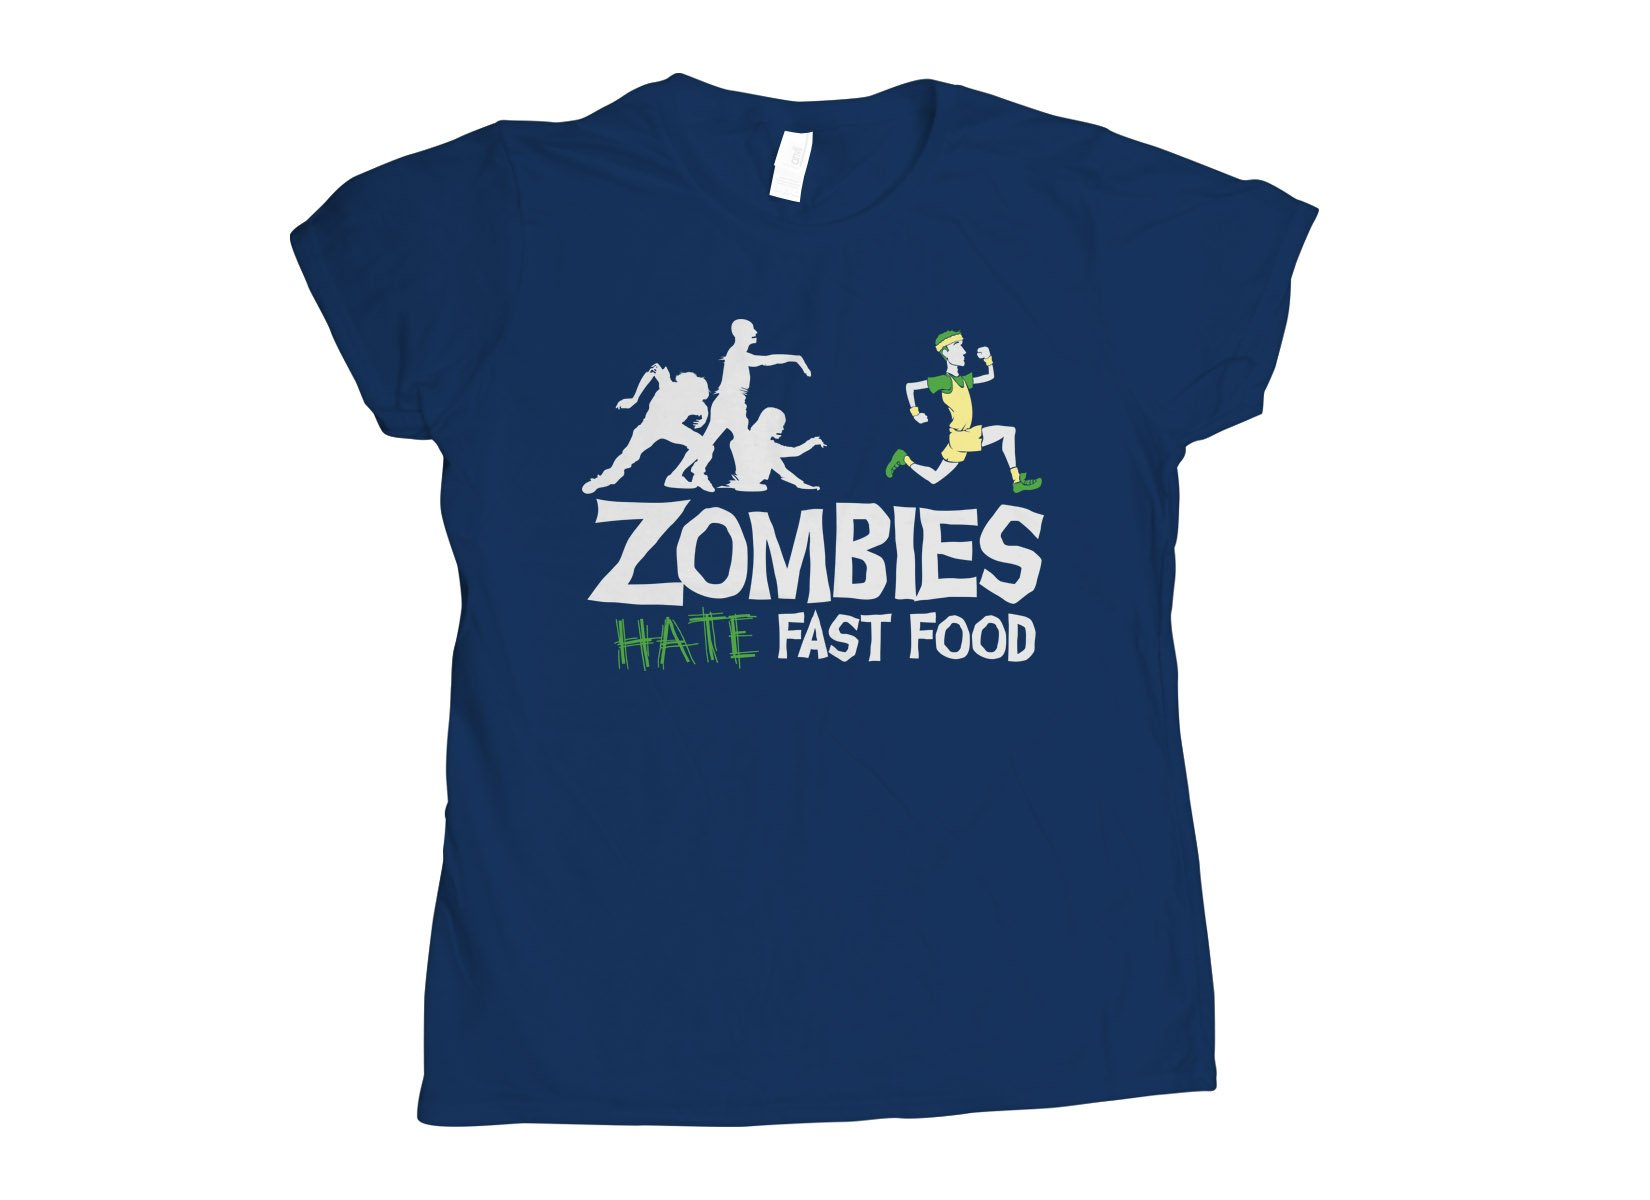 Zombies Hate Fast Food on Womens T-Shirt